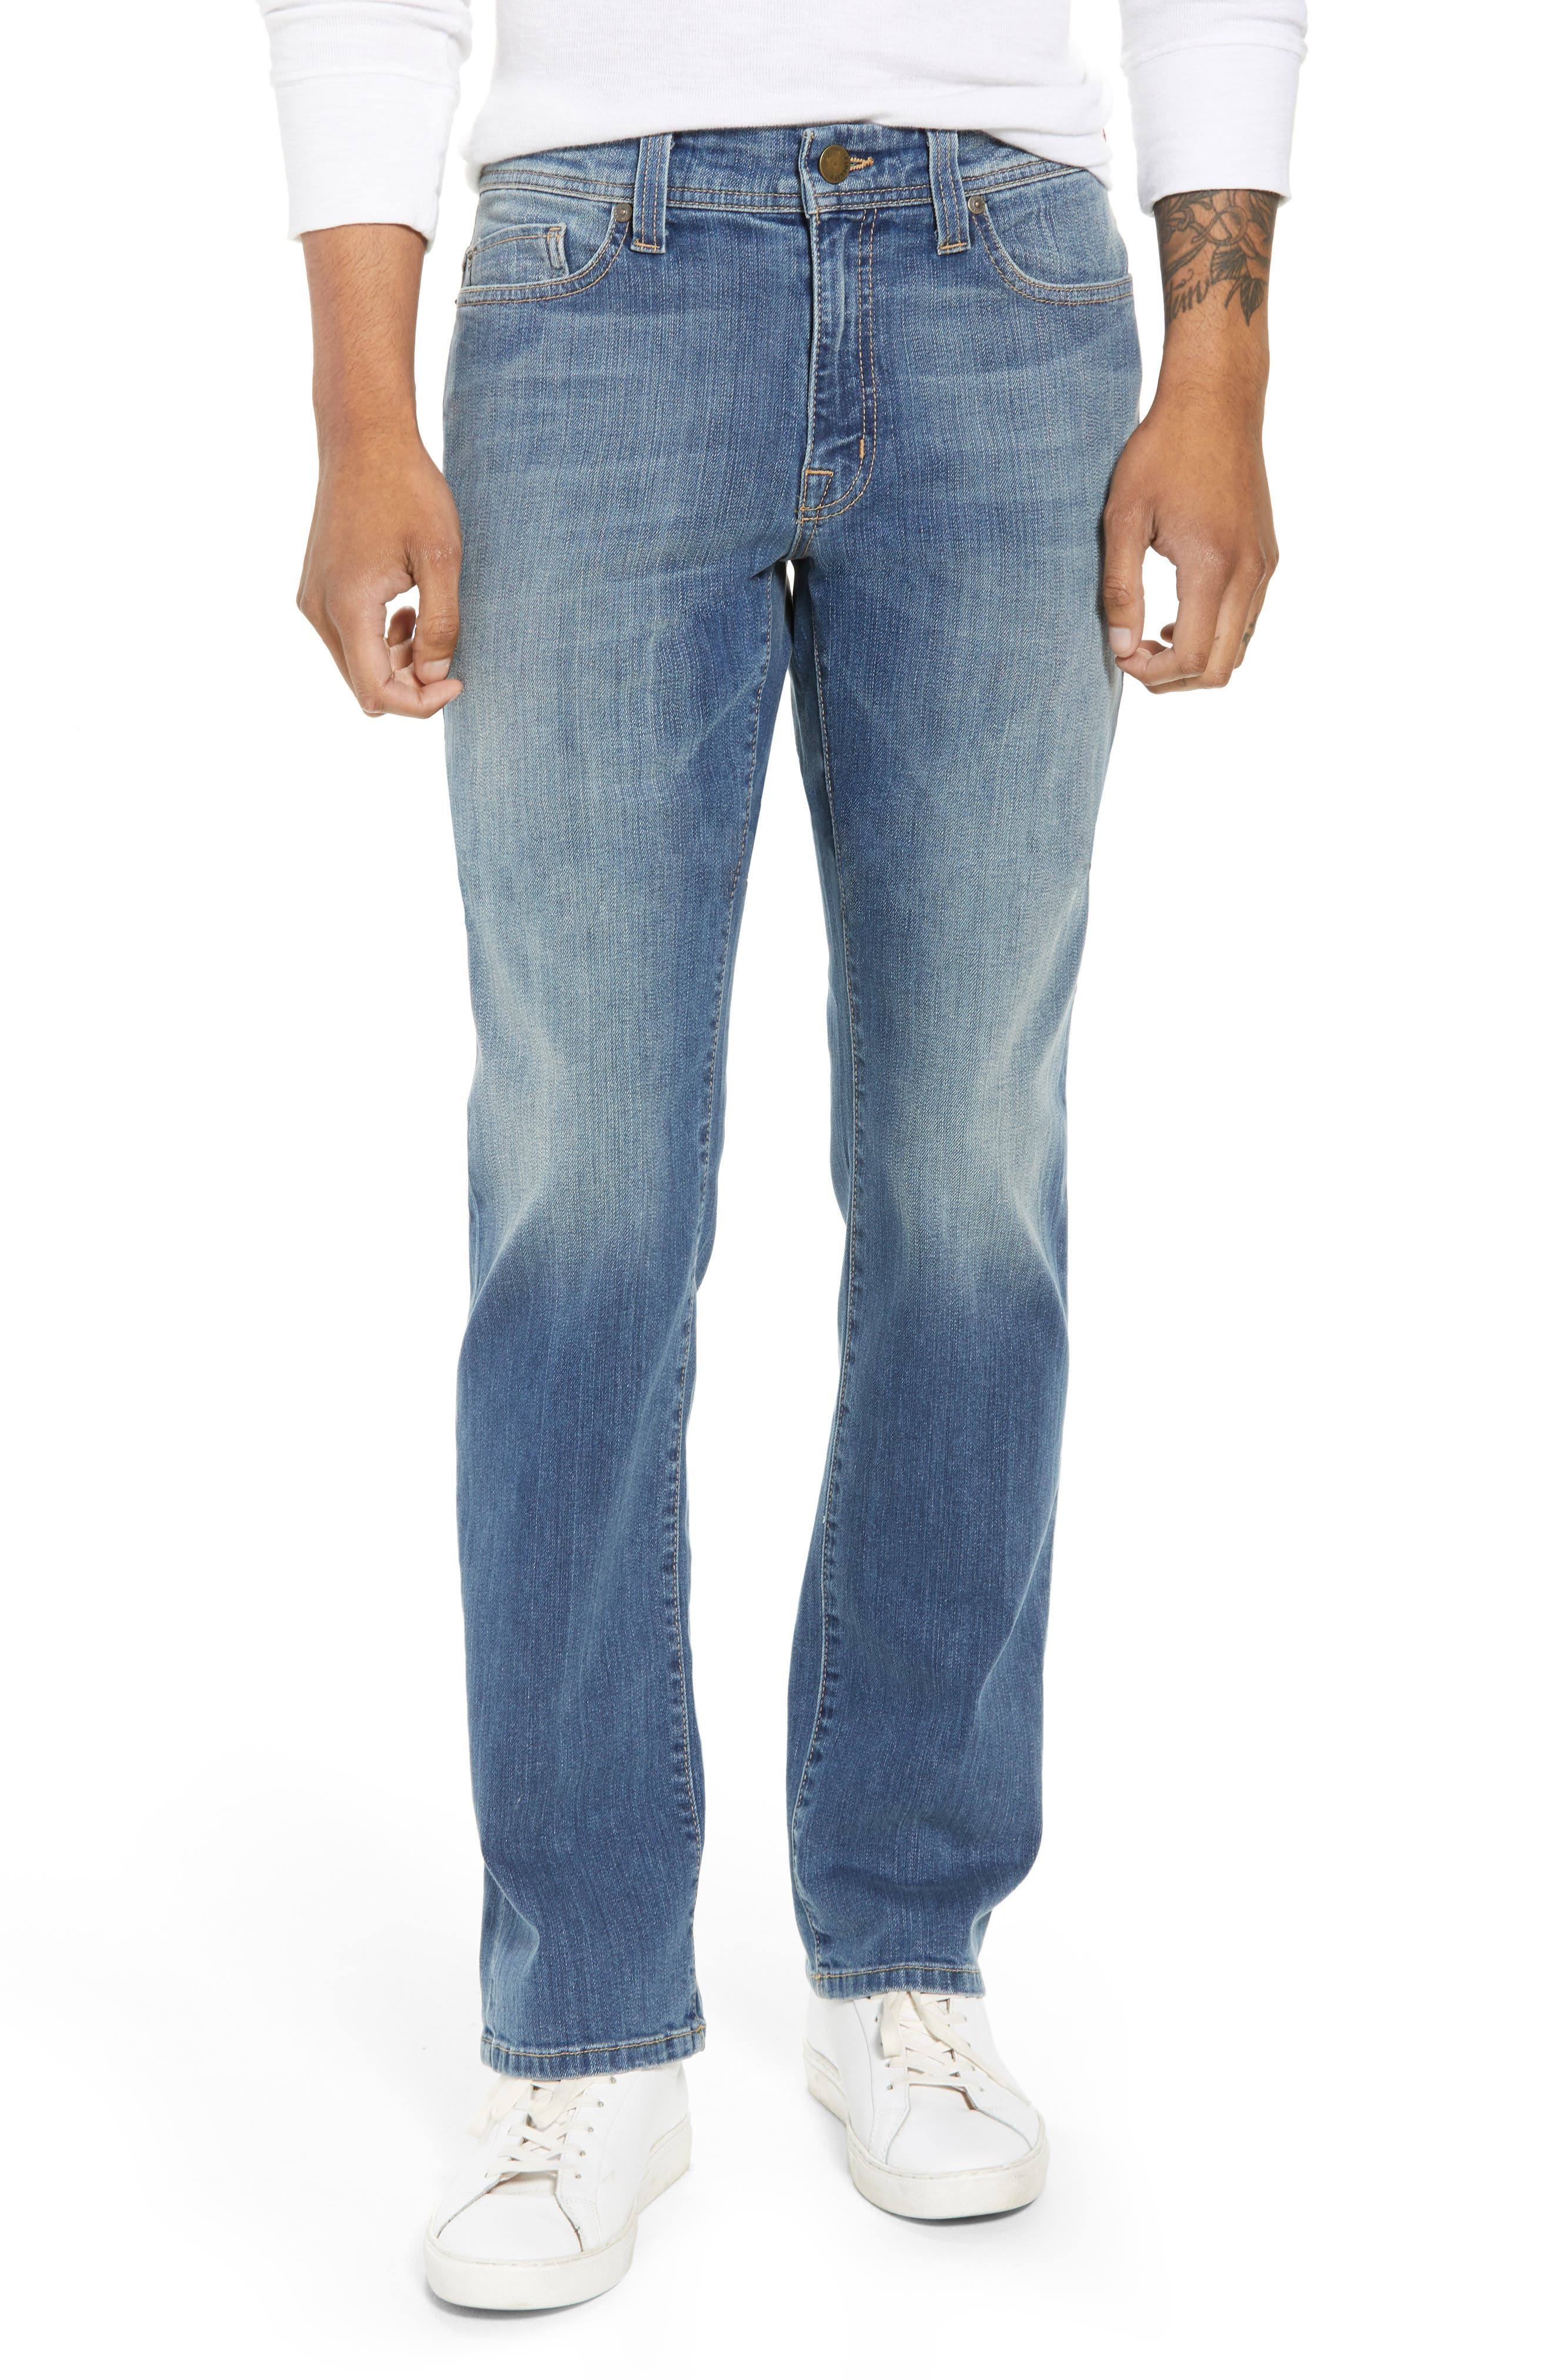 Jimmy Slim Straight Leg Jeans,                         Main,                         color, Syndicate Blue